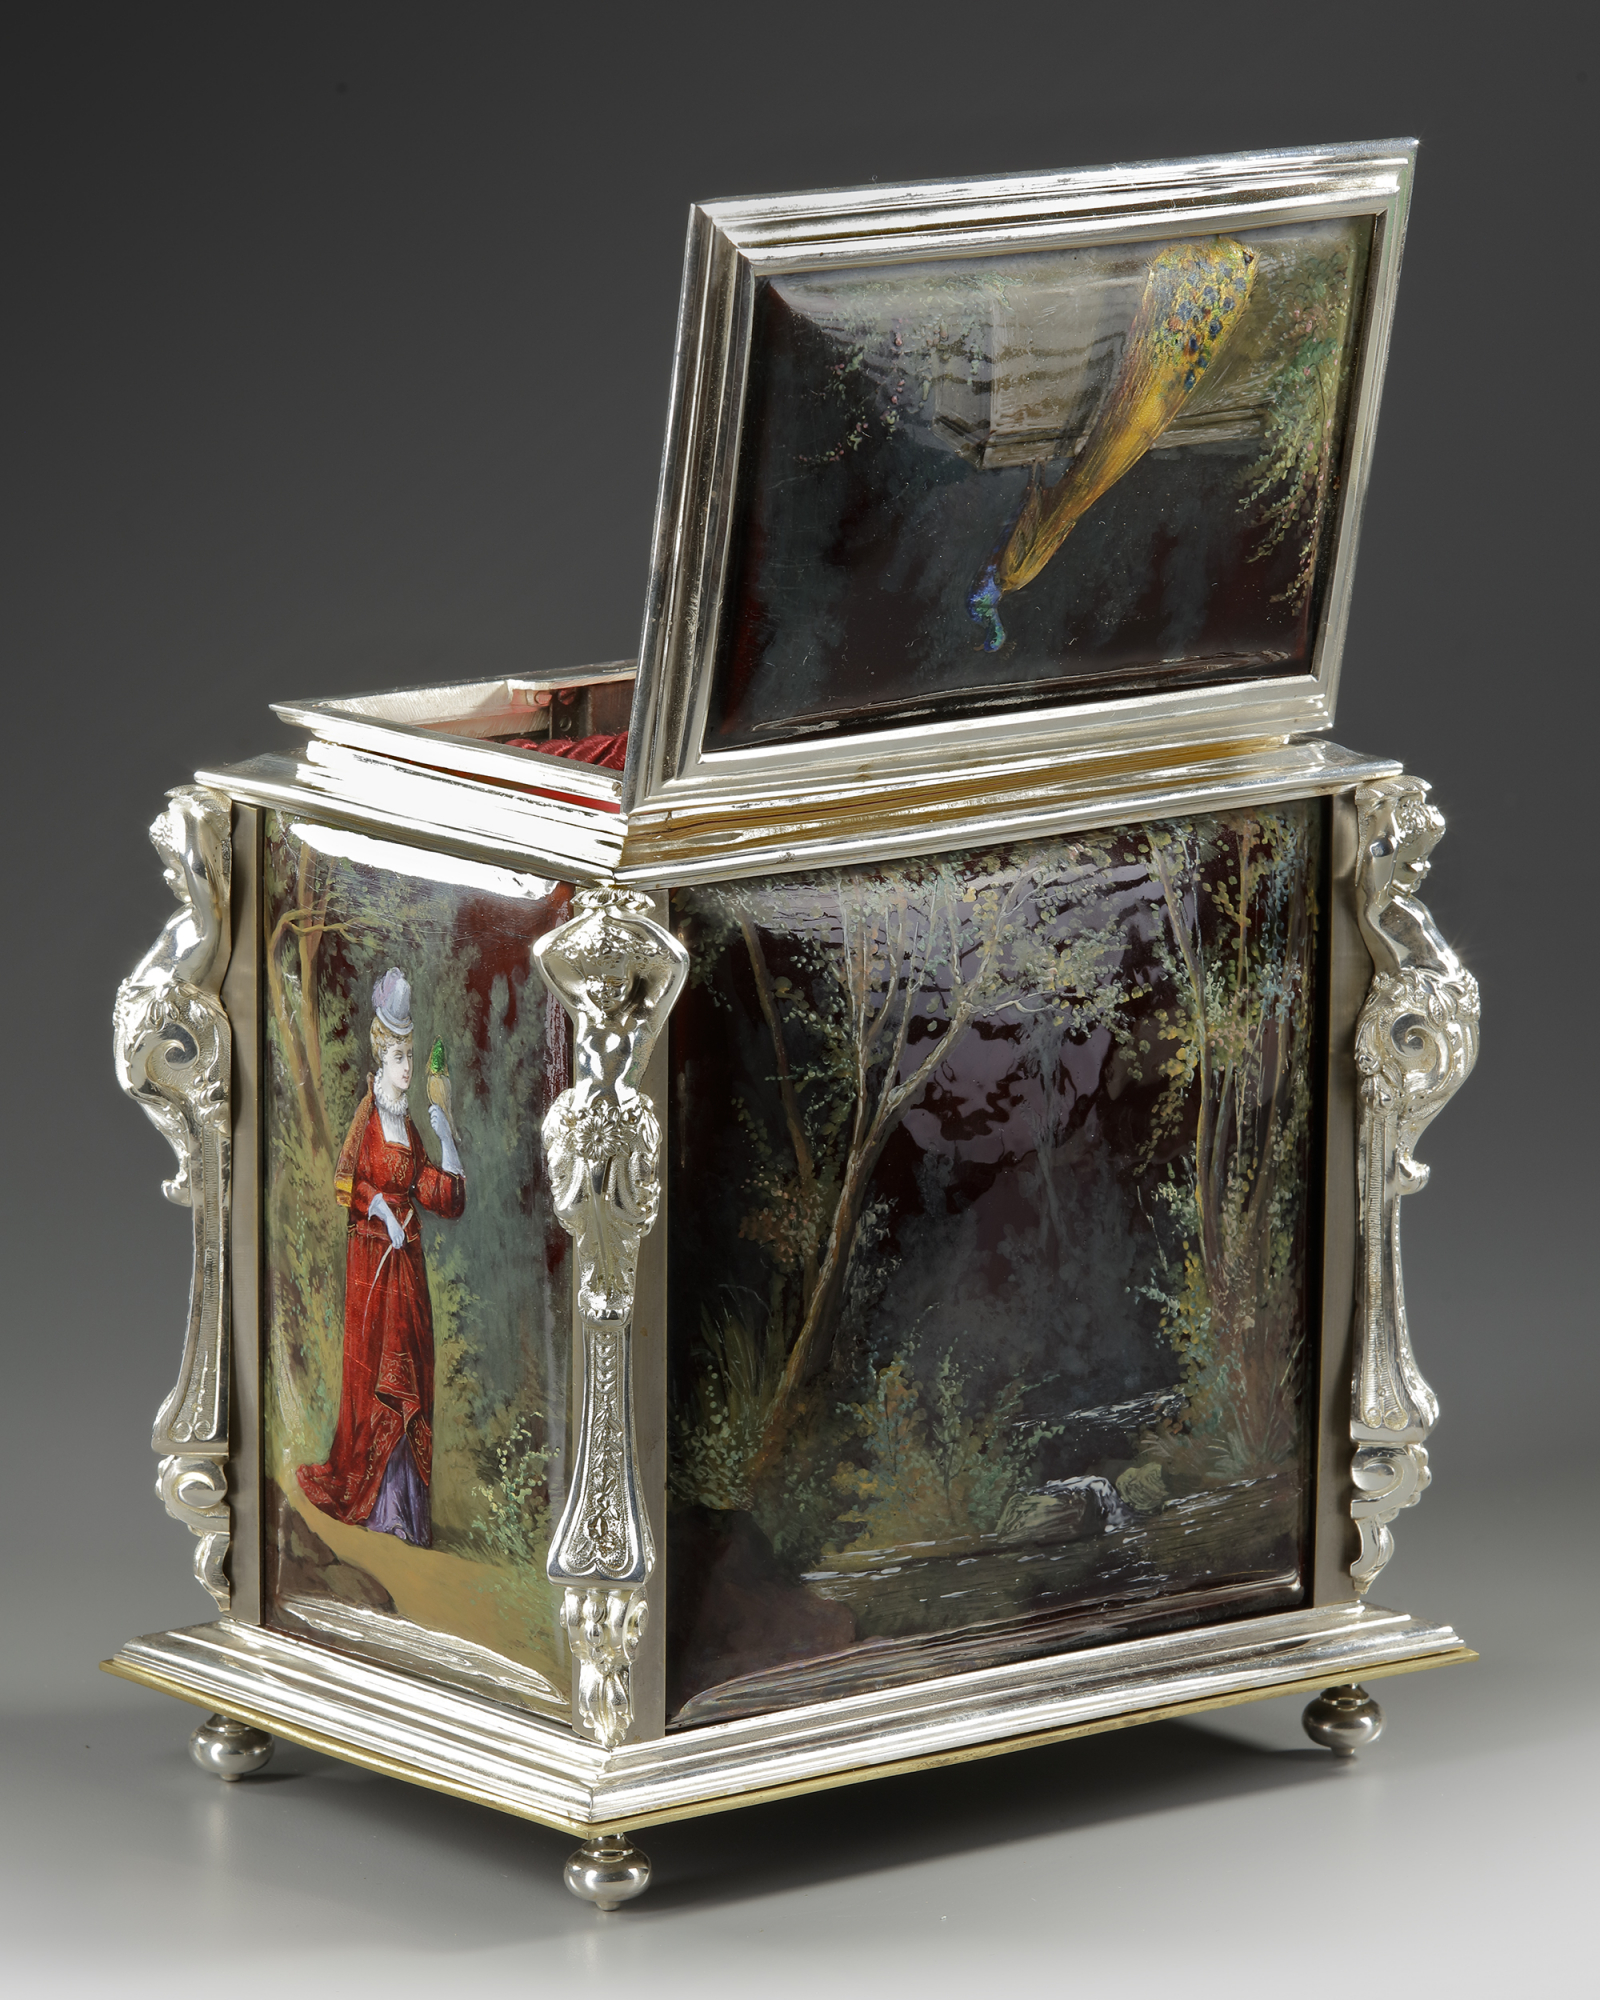 A JEWELRY BOX, FRANCE, LATE 19TH CENTURY - Image 3 of 5